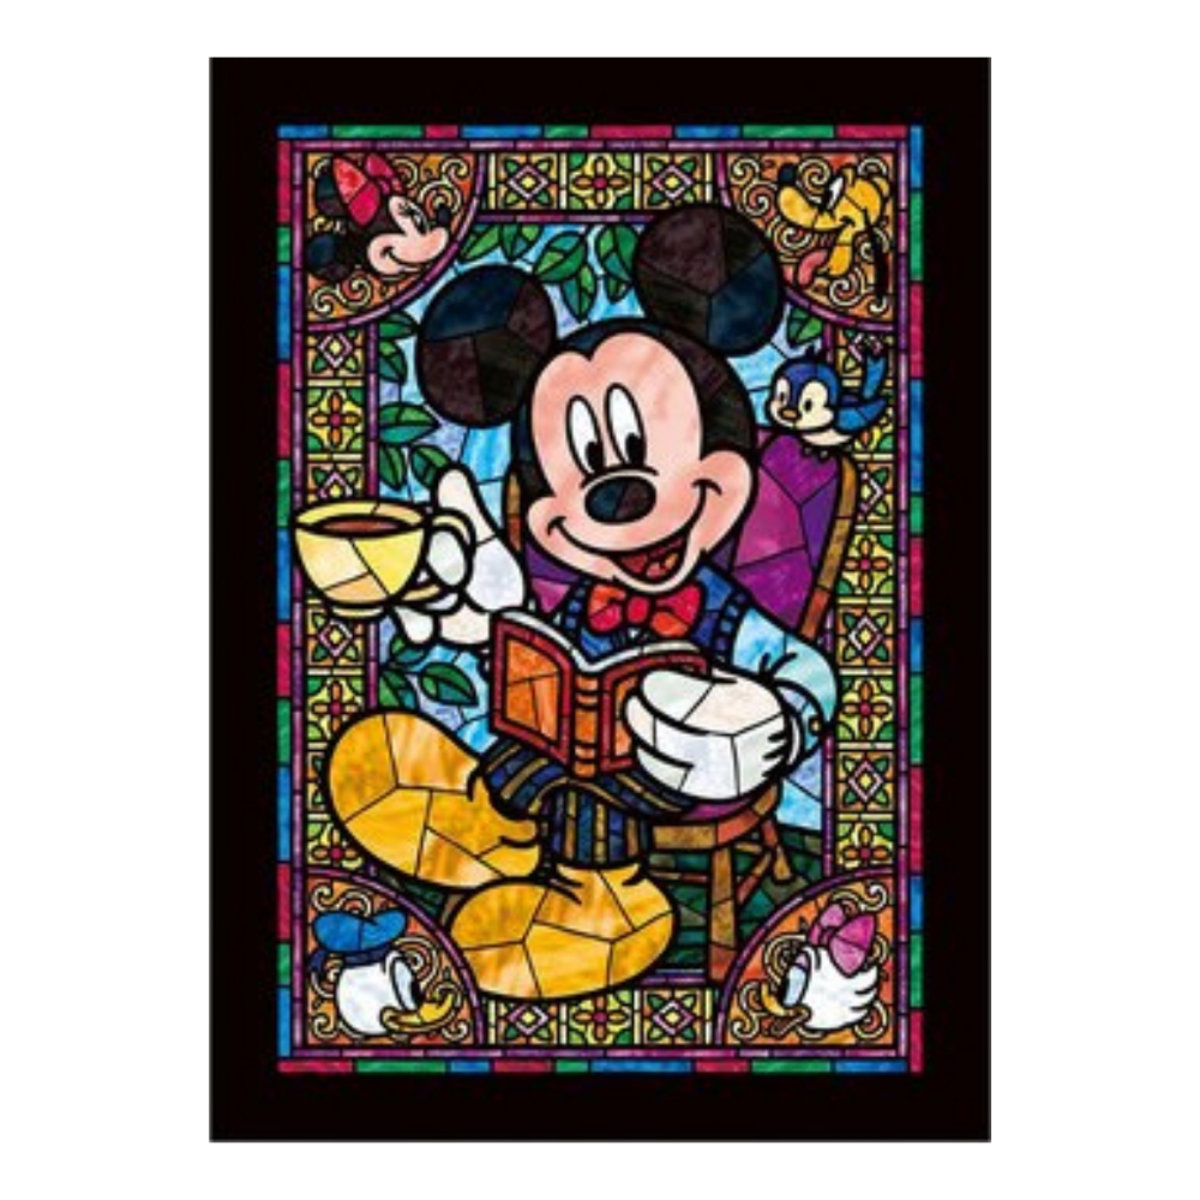 DSG-266-955 266 pieces puzzle Mickey Mouse (4905823859551) [Licensed by Disney]